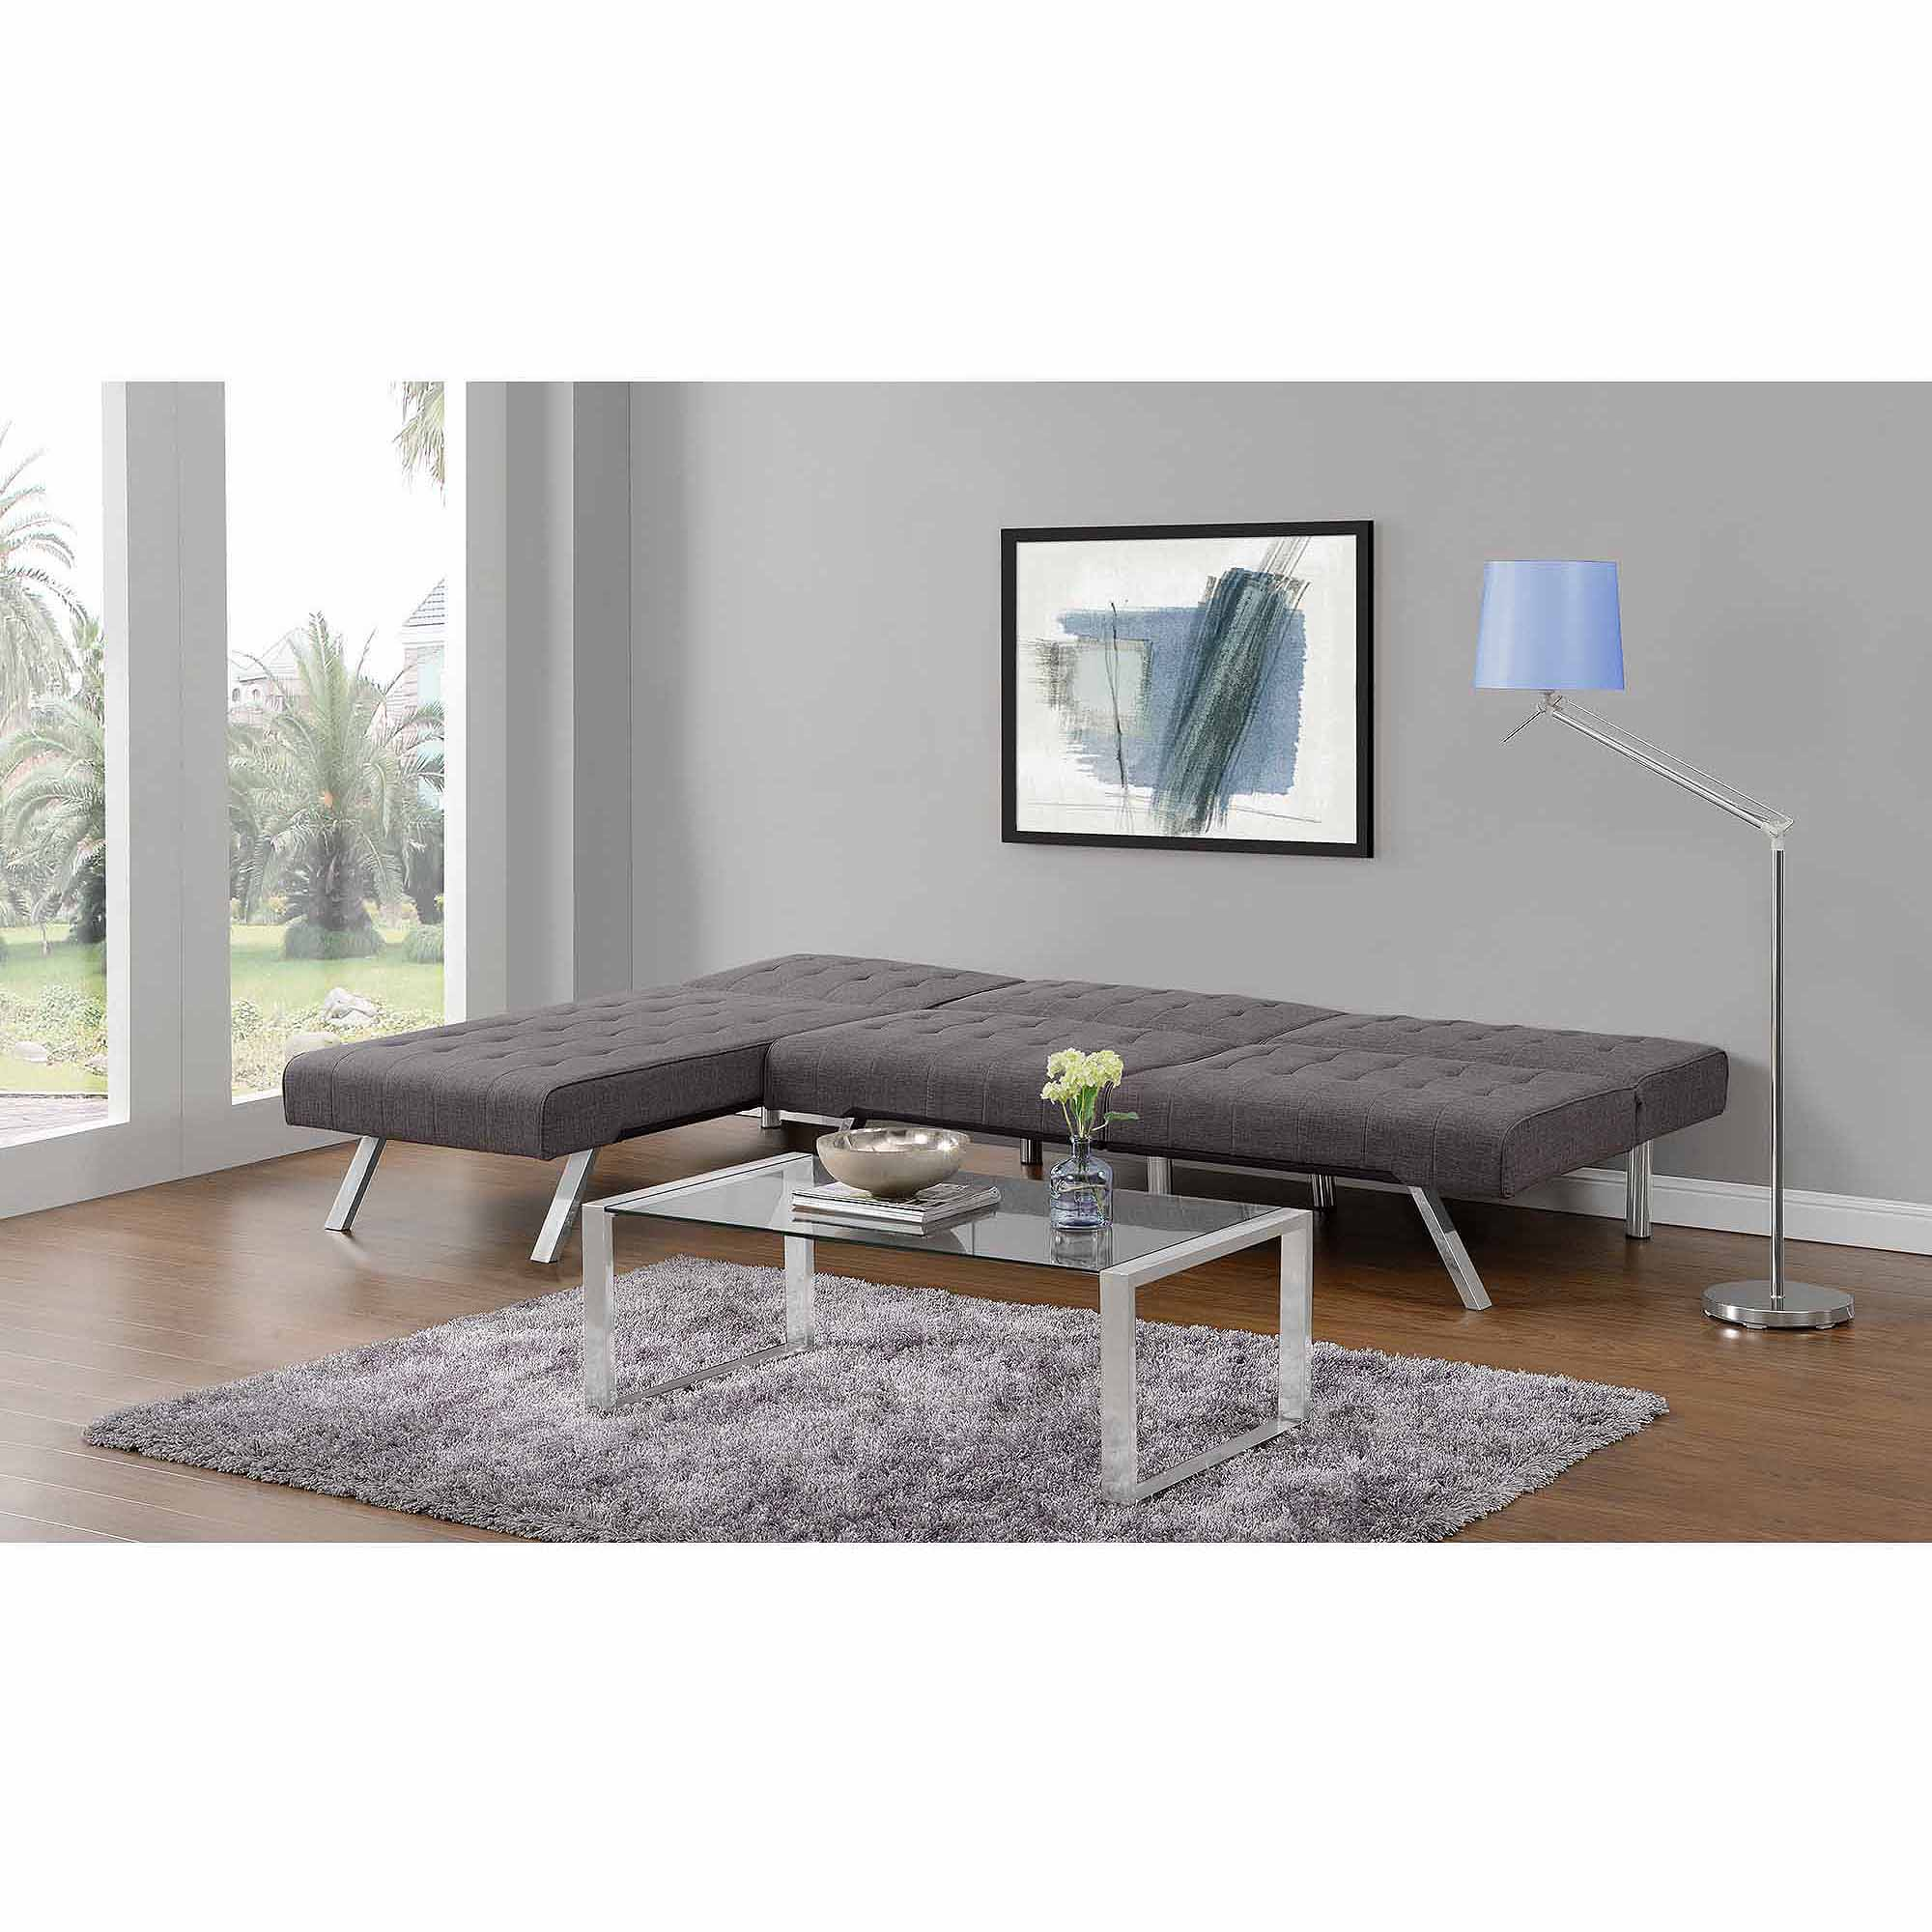 DHP Emily Futon Modern Furniture Chaise Lounger Twin Size